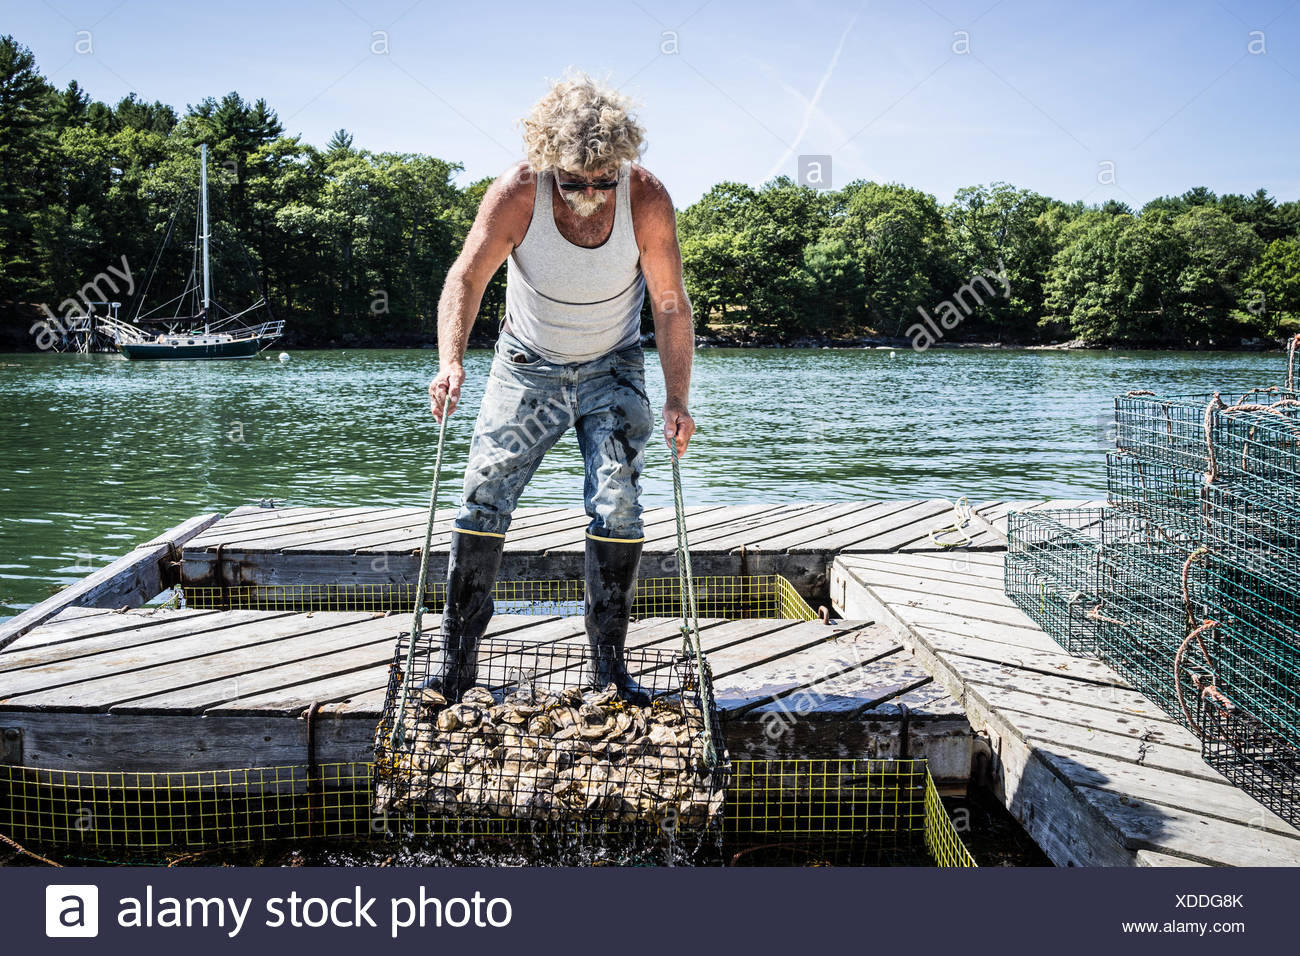 An oyster fisherman hauls a basket of oysters up from a holding pen in the river. Stock Photo